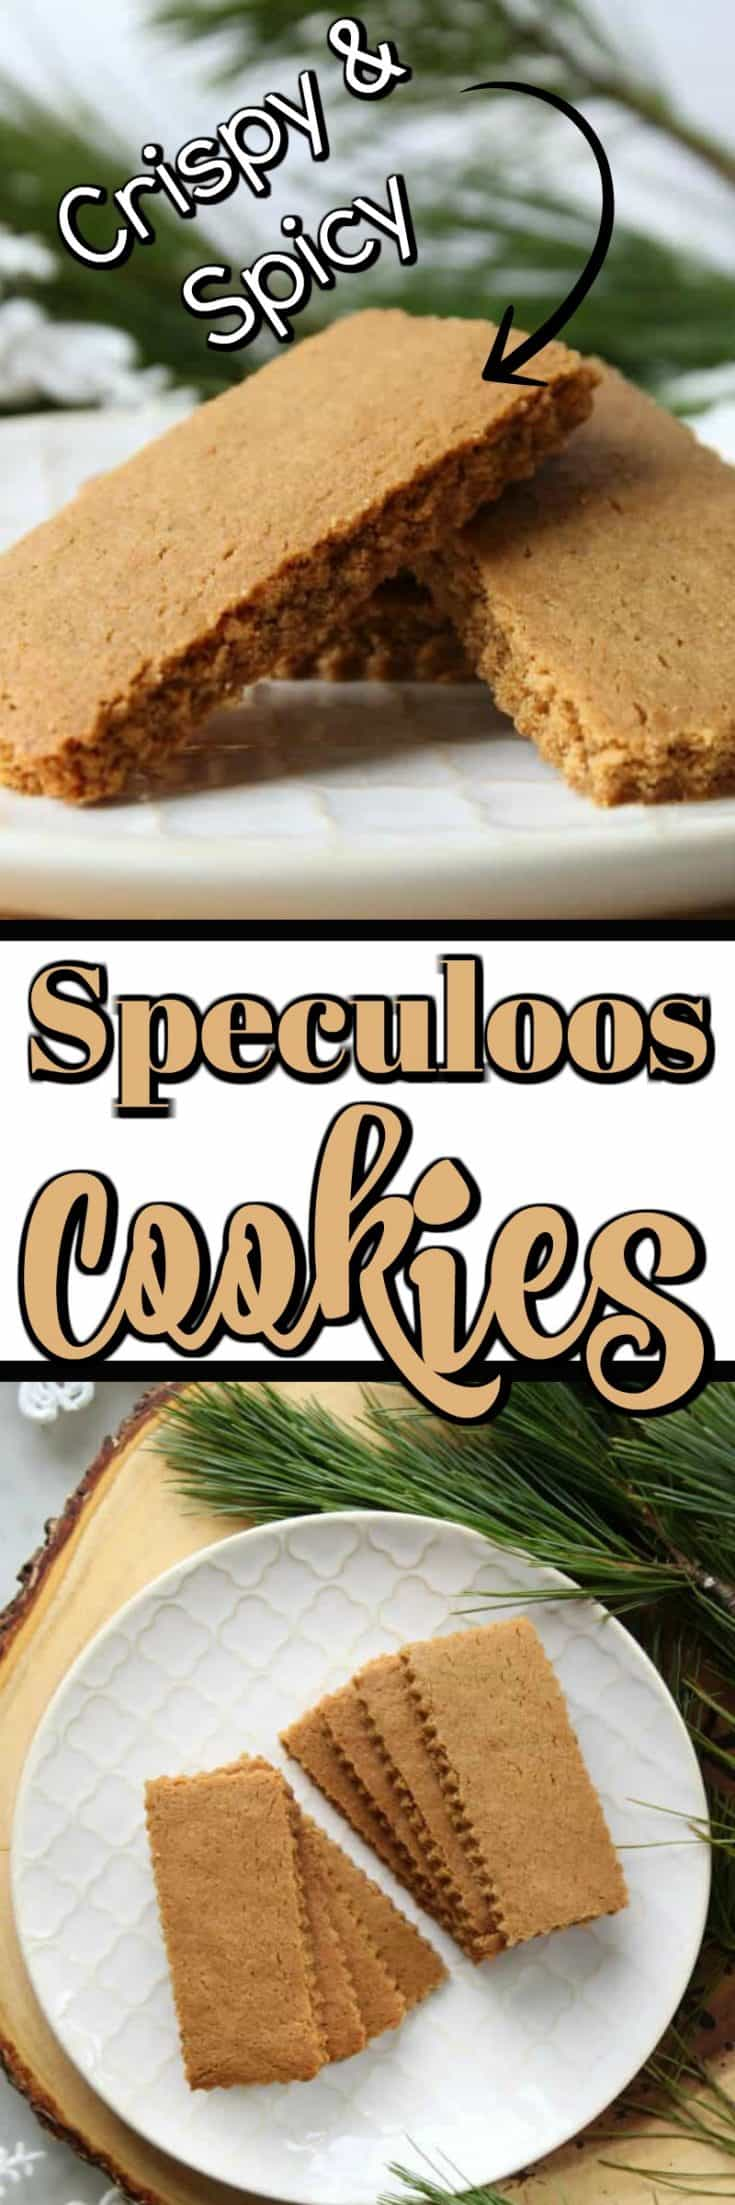 These Speculoos Cookies (Speculaas) are a favorite at any time of the year!! They just seem more magical at Christmas time and St. Nicolas will love to have a plateful on his busy night!! #speculoos #speculaas